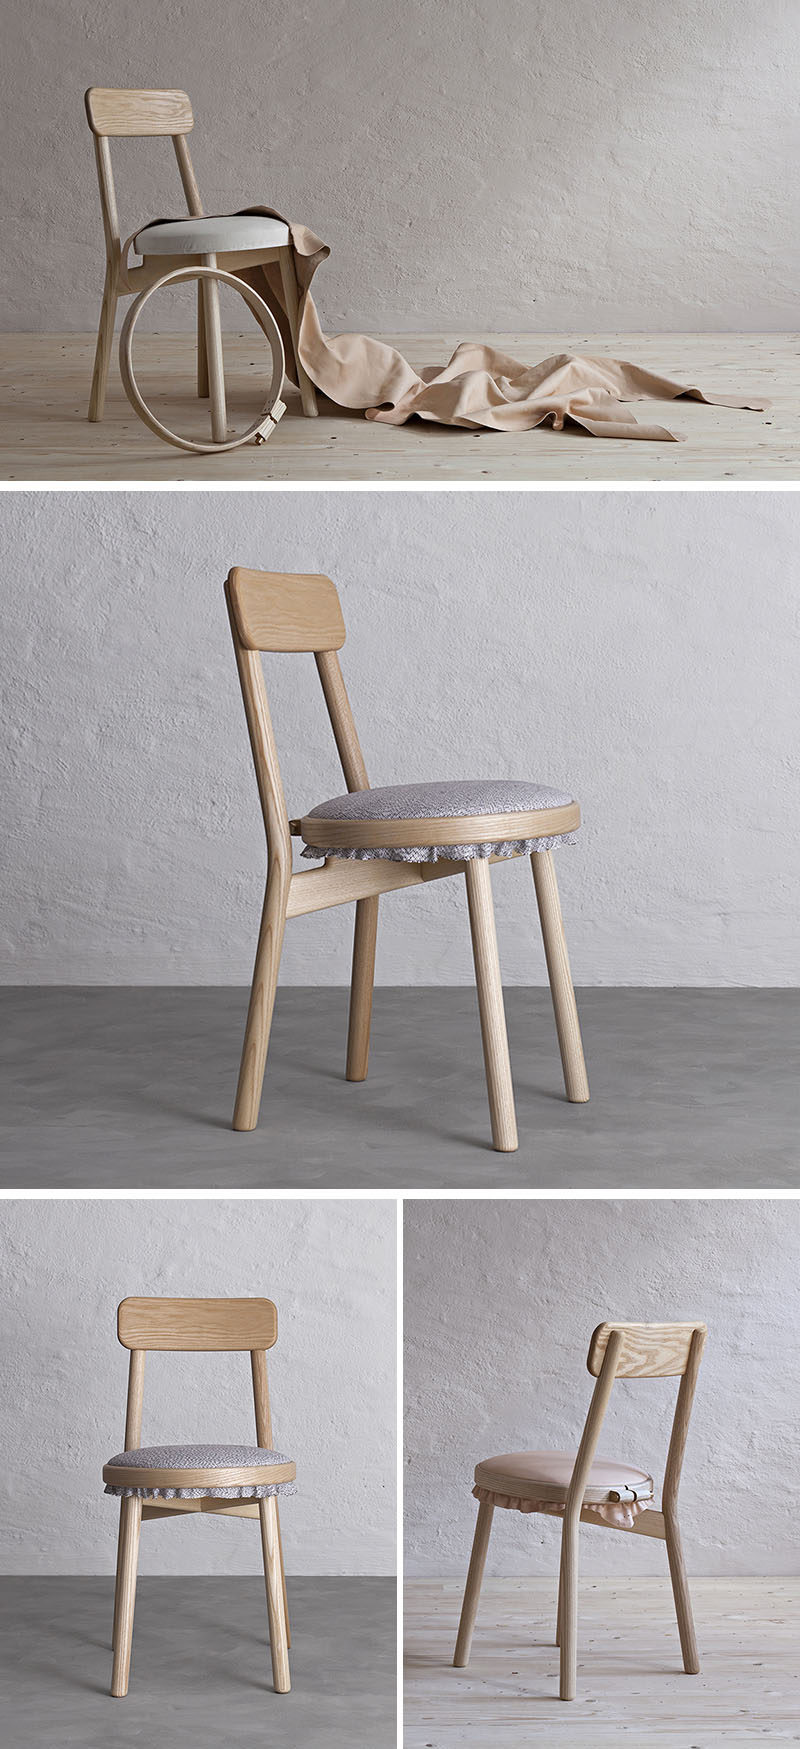 Merveilleux Swedish Design Firm Stoft Studio, Have Created The Canvas Chair, A Simple Wood  Chair